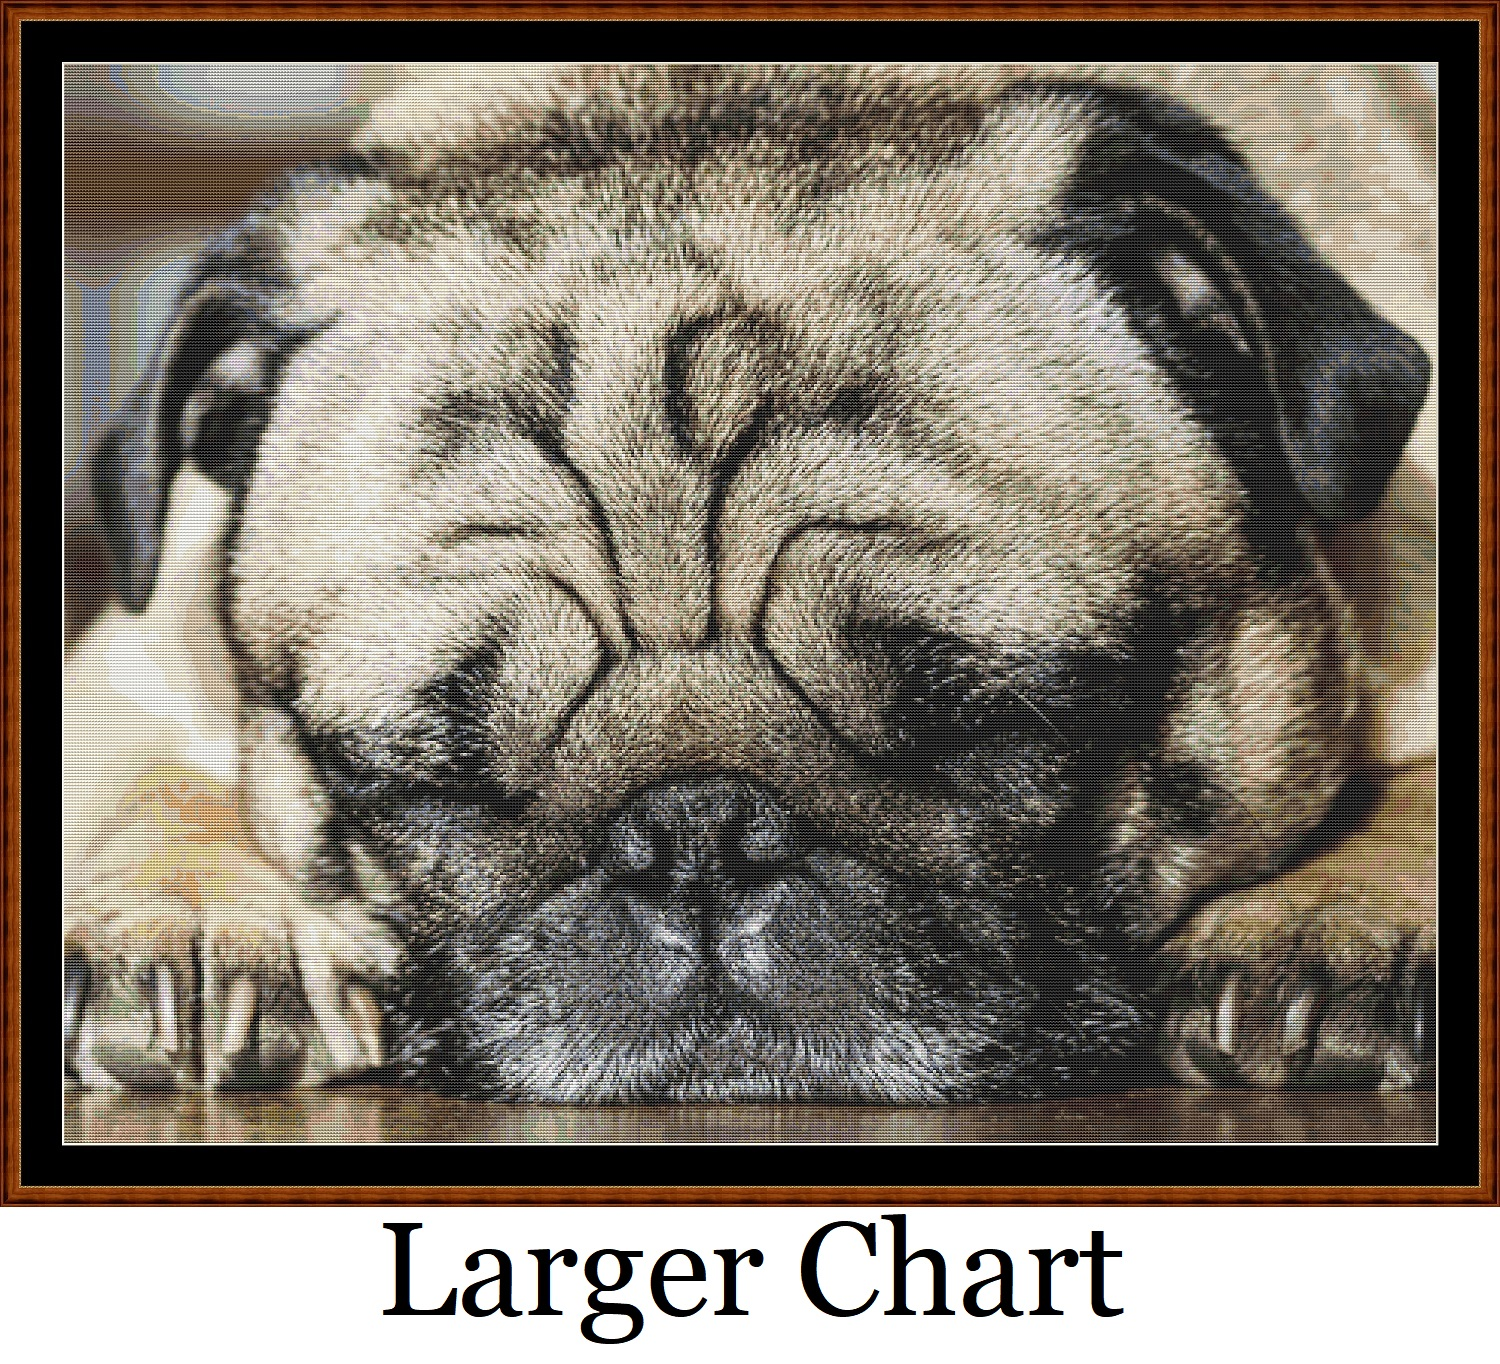 Sleepy Pups 2 - 3 Cross Stitch Charts Pack